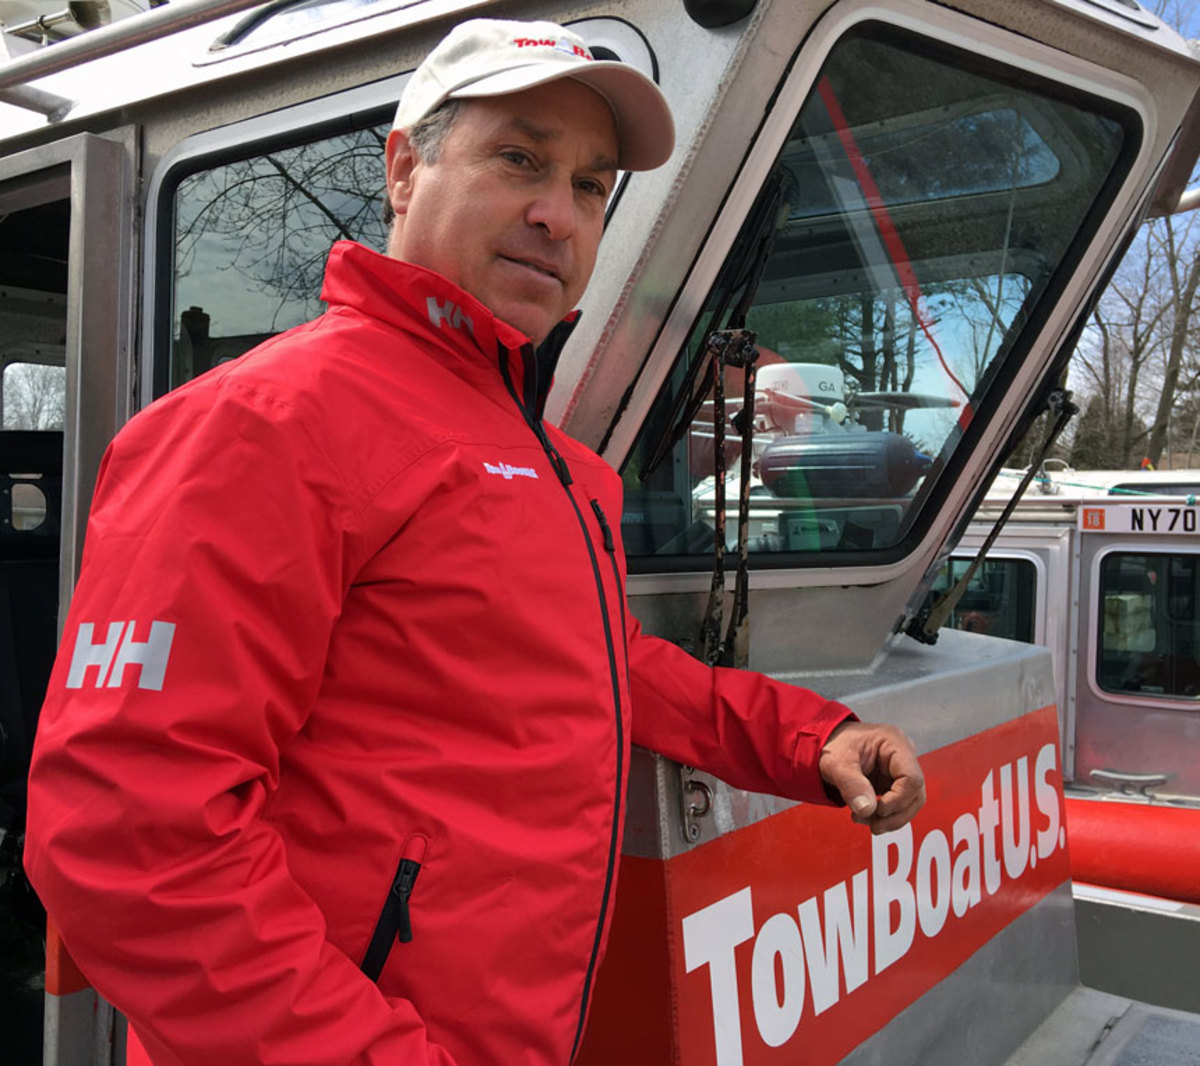 Helly Hansen is supplying apparel to TowBoatUS captains and crew.